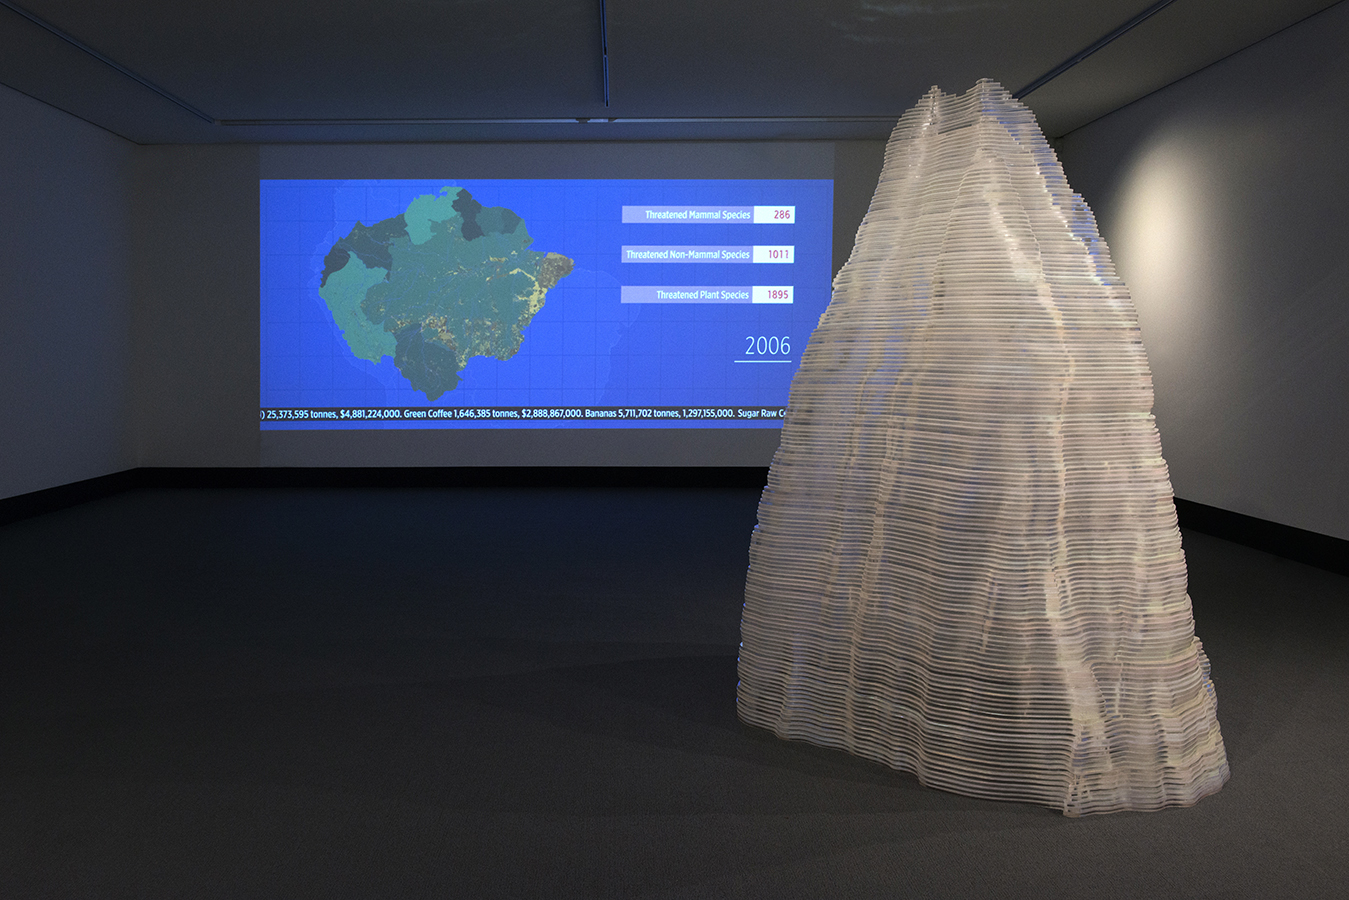 5. Debbie Symons and Jasmine Targett - The Politics of Perception - Installations View. Latrobe Regional Gallery. Artworks Shown - Back wall - D.Symons- Amazonia. Right - J.Targett - Blind Spot.